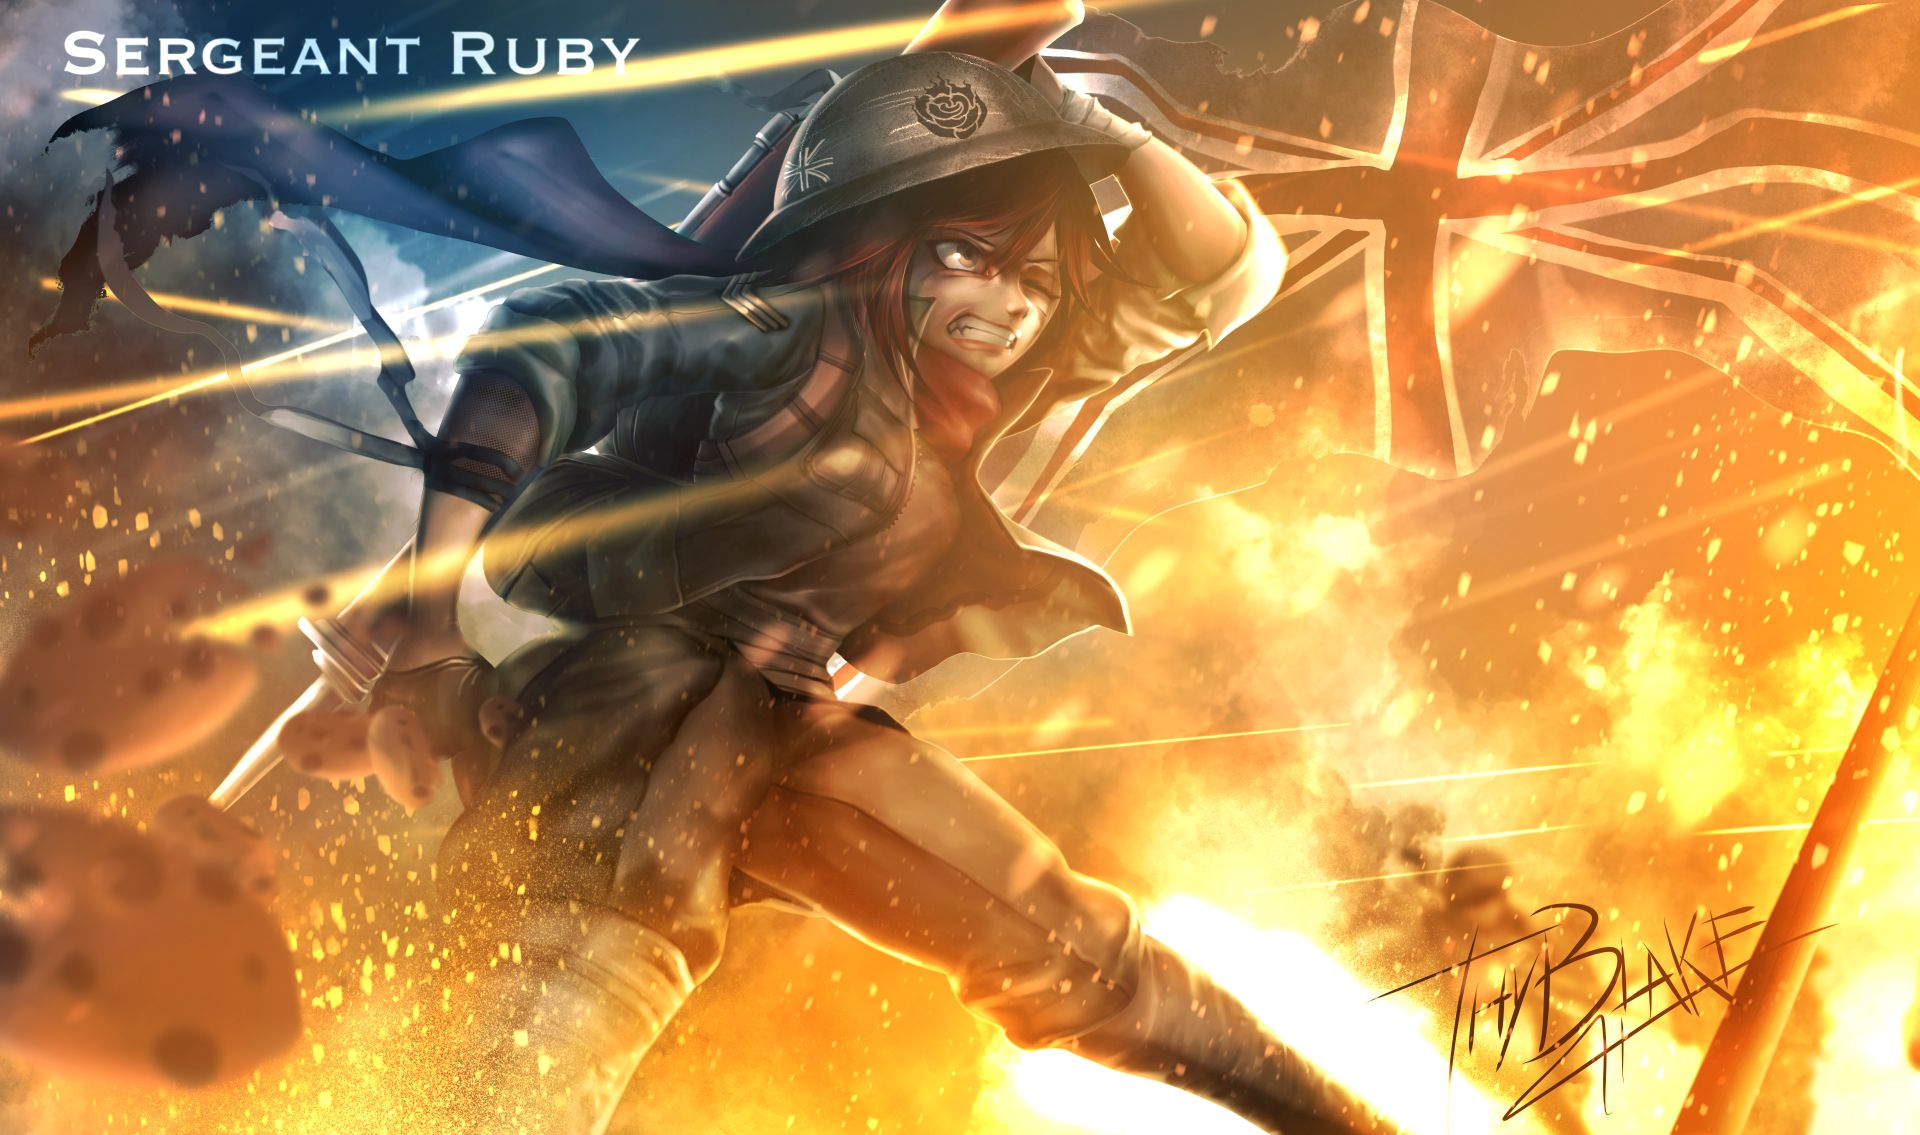 rwby__ww2_nations__uk___ruby_by_thyblake_dccywj1.jpg